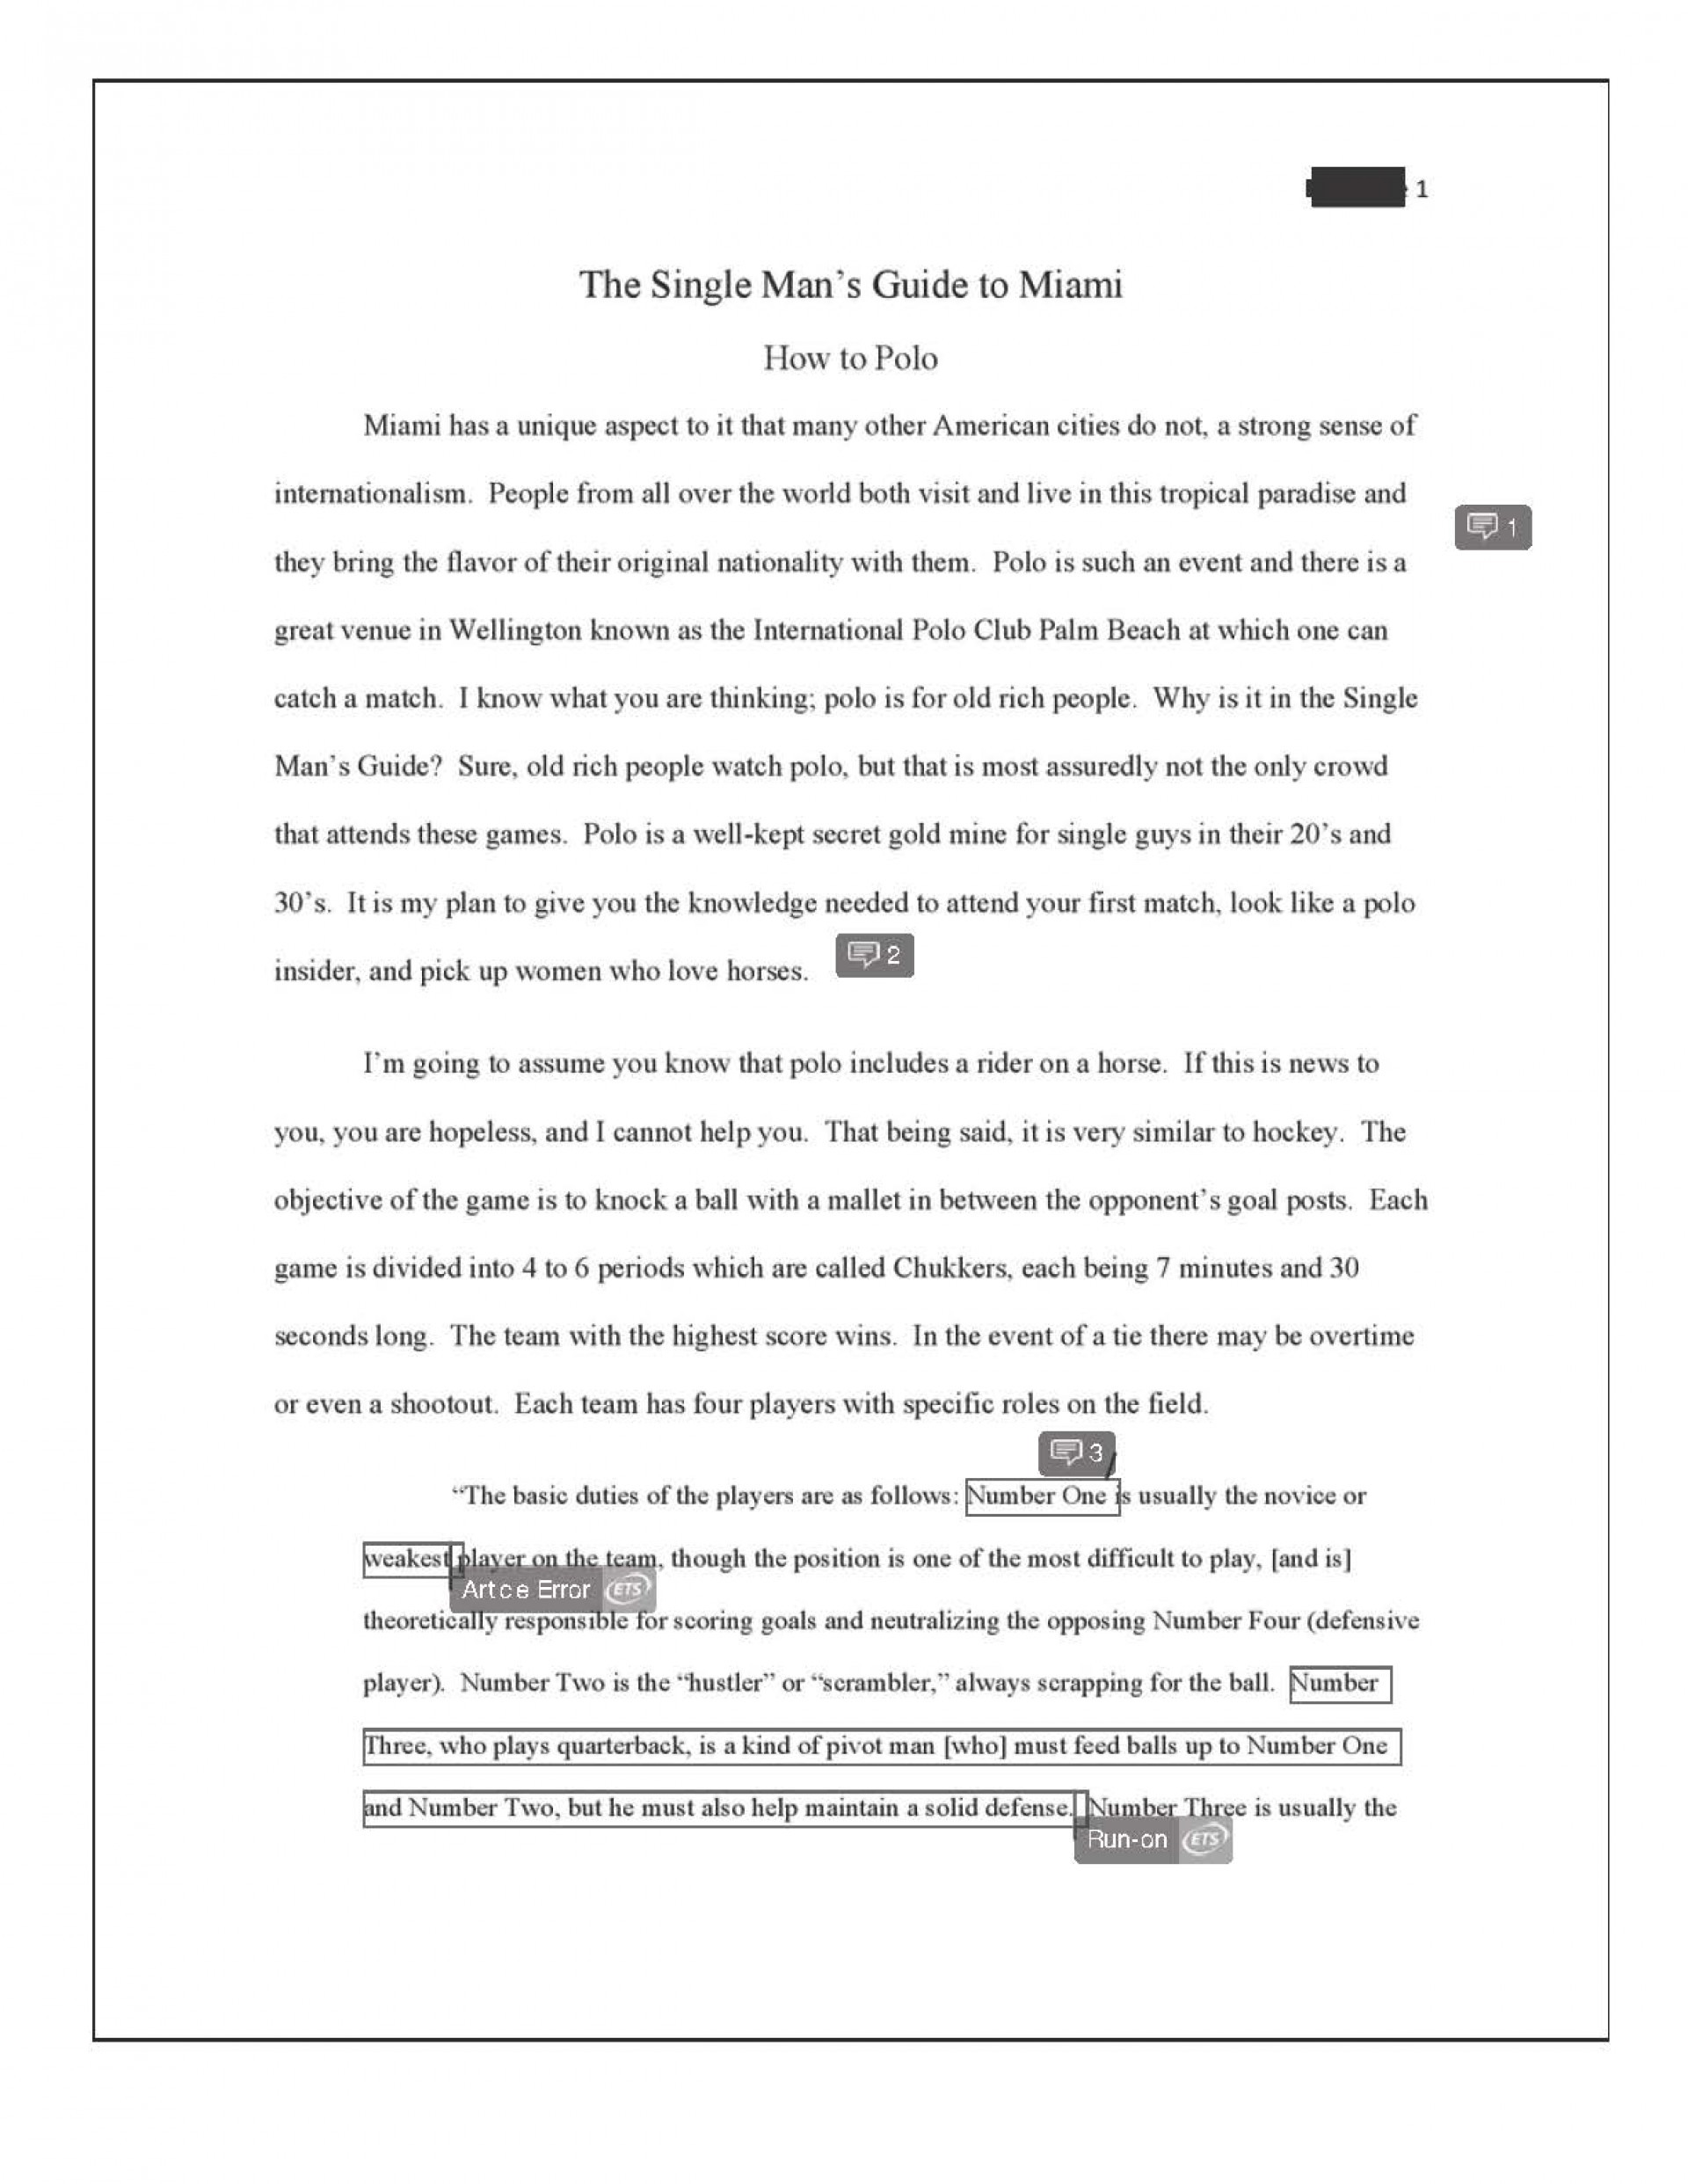 009 Essay Example Informative Format Final How To Polo Redacted Page 2 Unbelievable Paper Speech Sample Pdf 1920